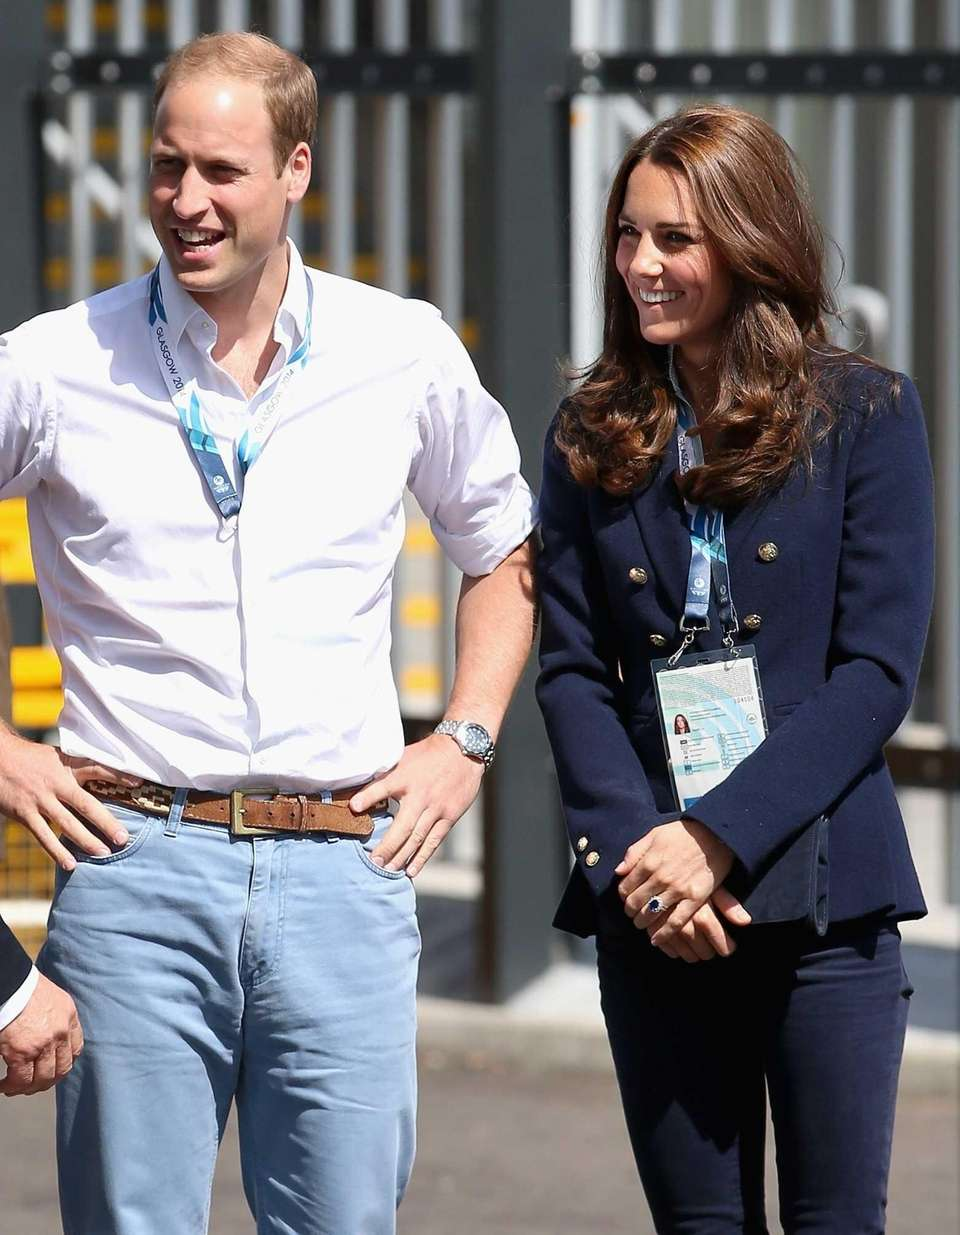 Prince William and Kate arrive at the SSE